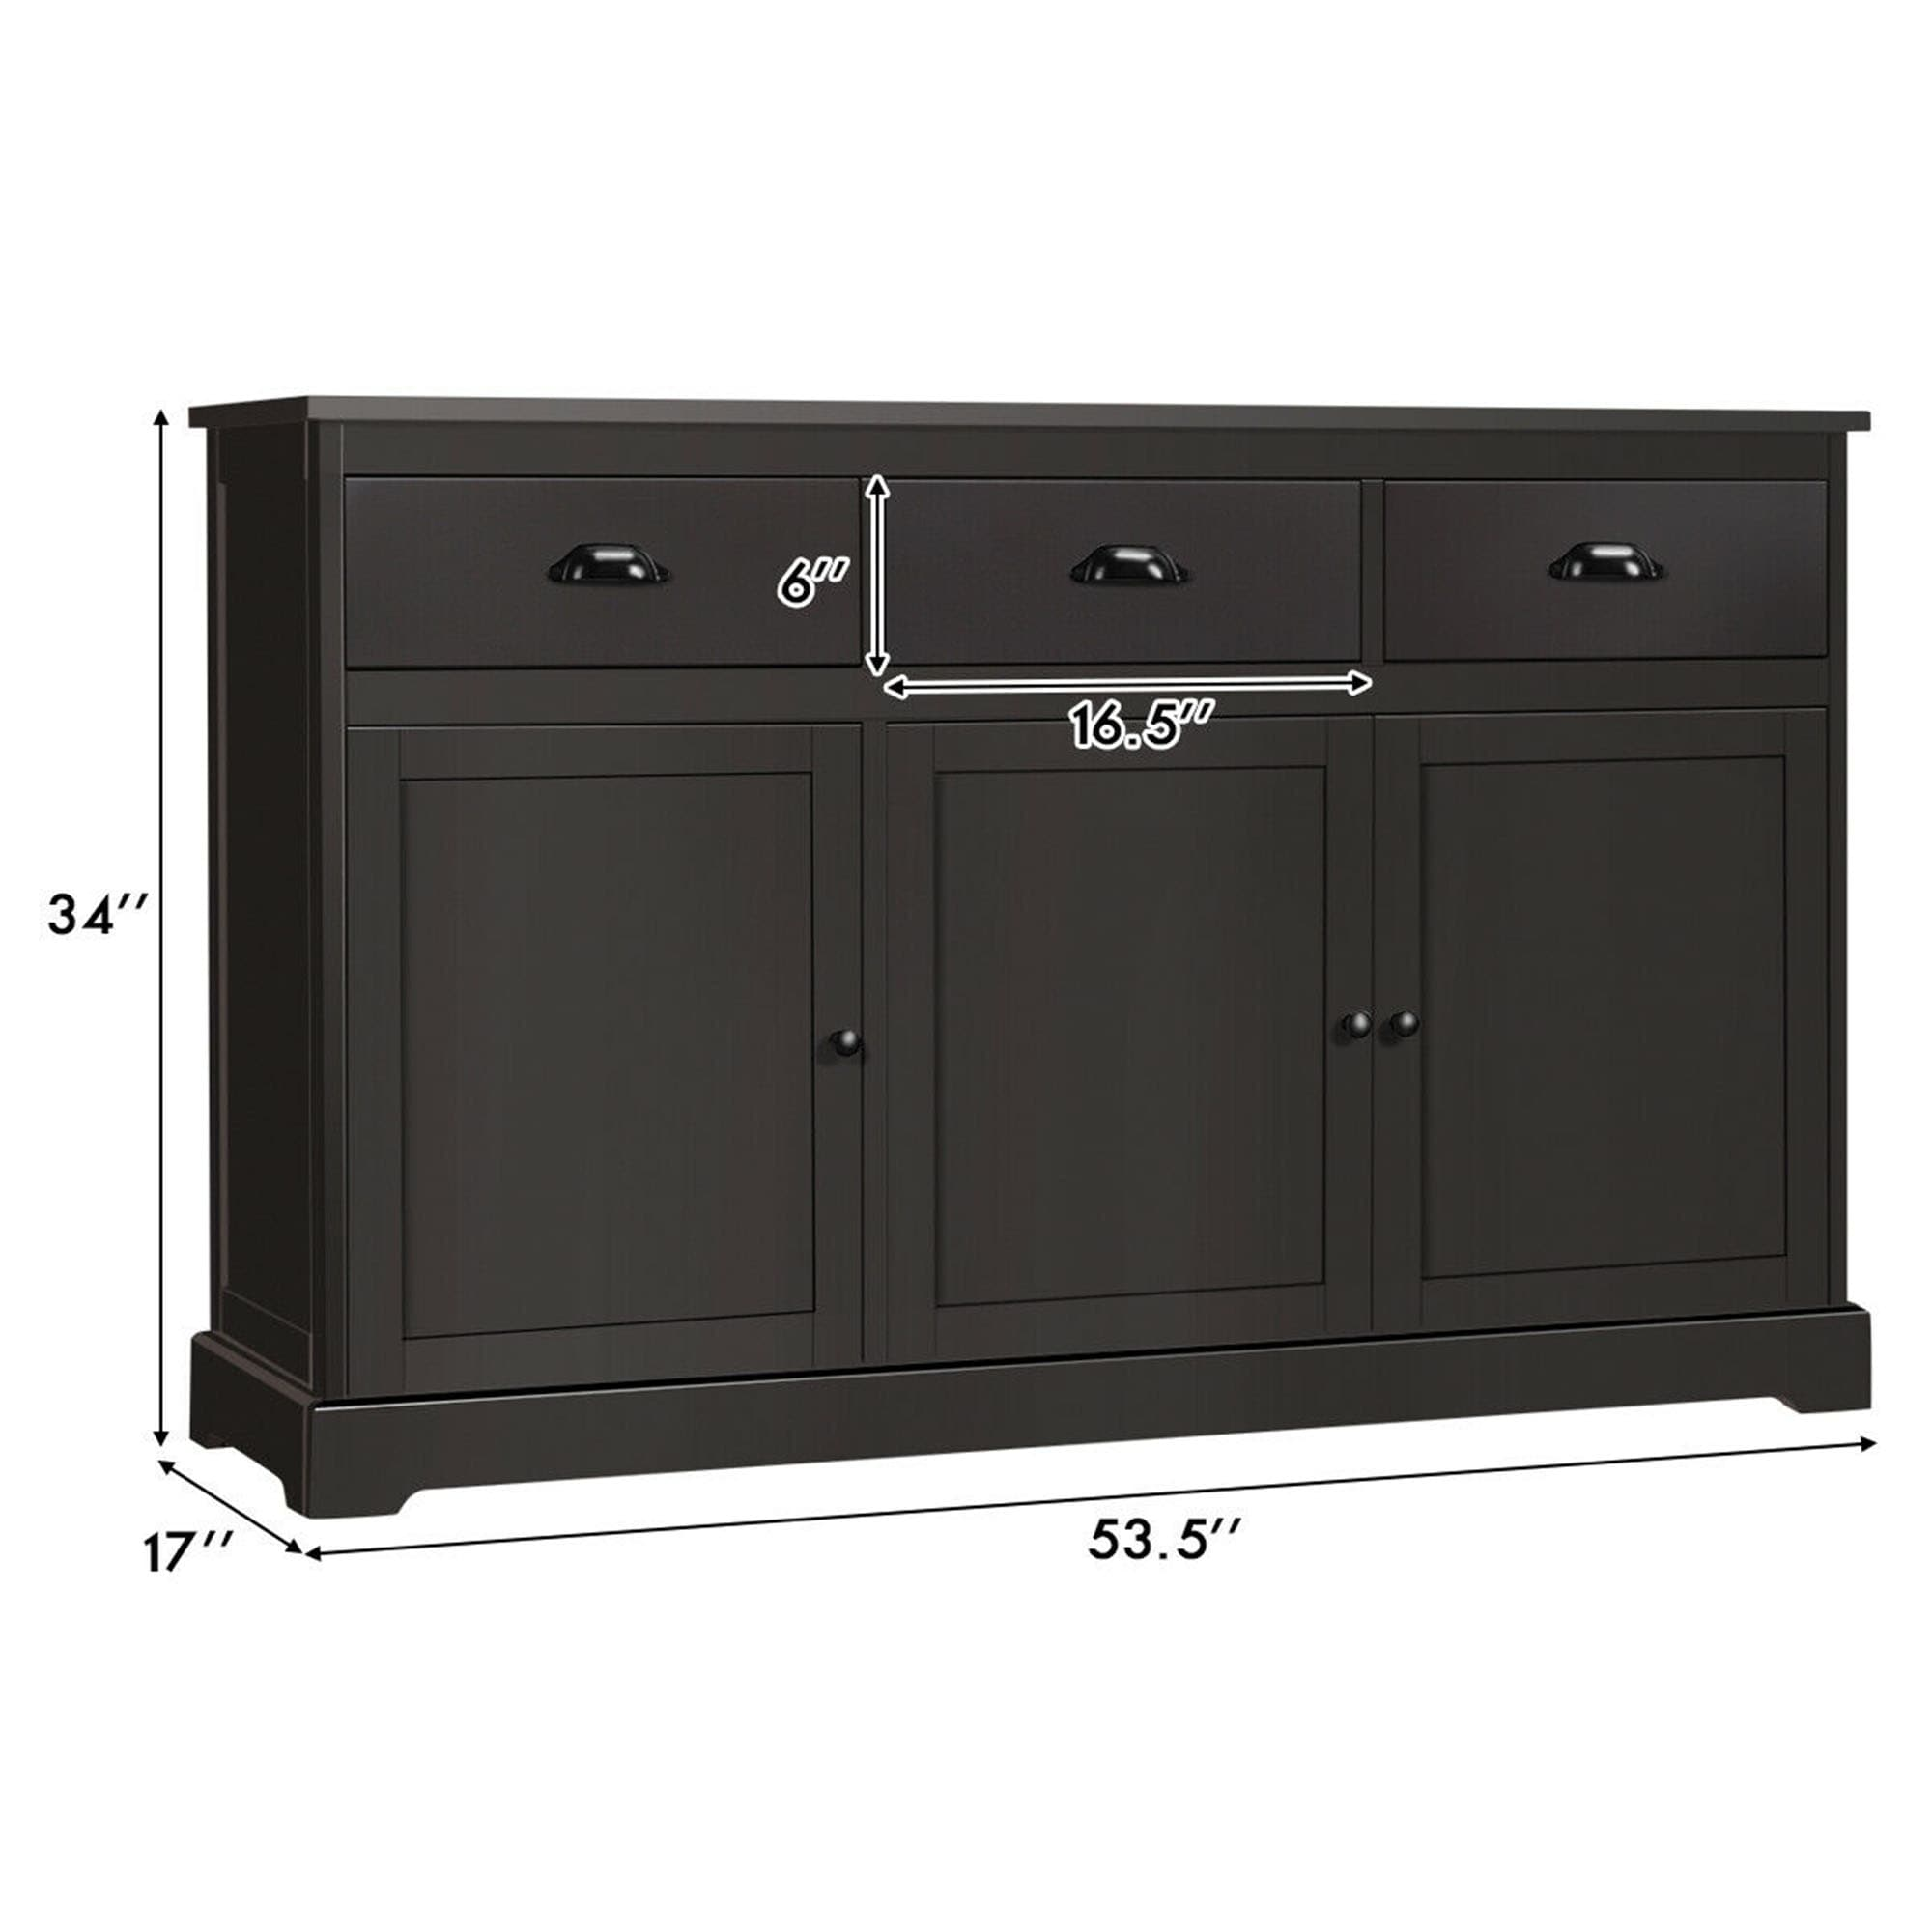 Picture of: Shop Gymax 3 Drawers Sideboard Buffet Cabinet Console Table Kitchen Storage Overstock 32343691